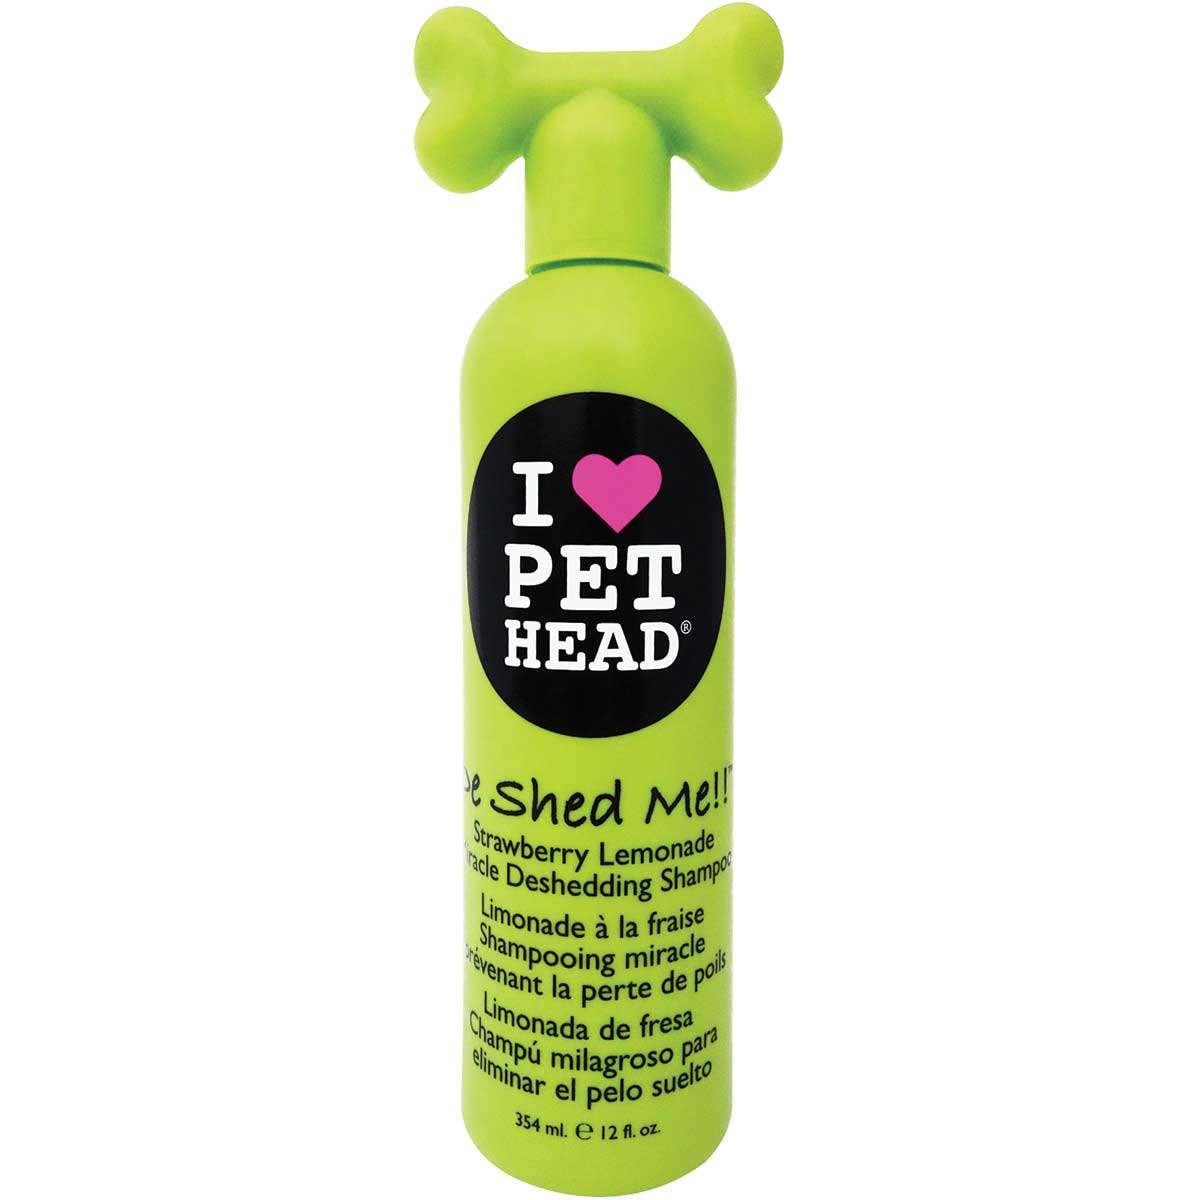 Pet Head De Shed Me!! Strawberry Lemonade Deshedding Shampoo for Dogs 12 oz